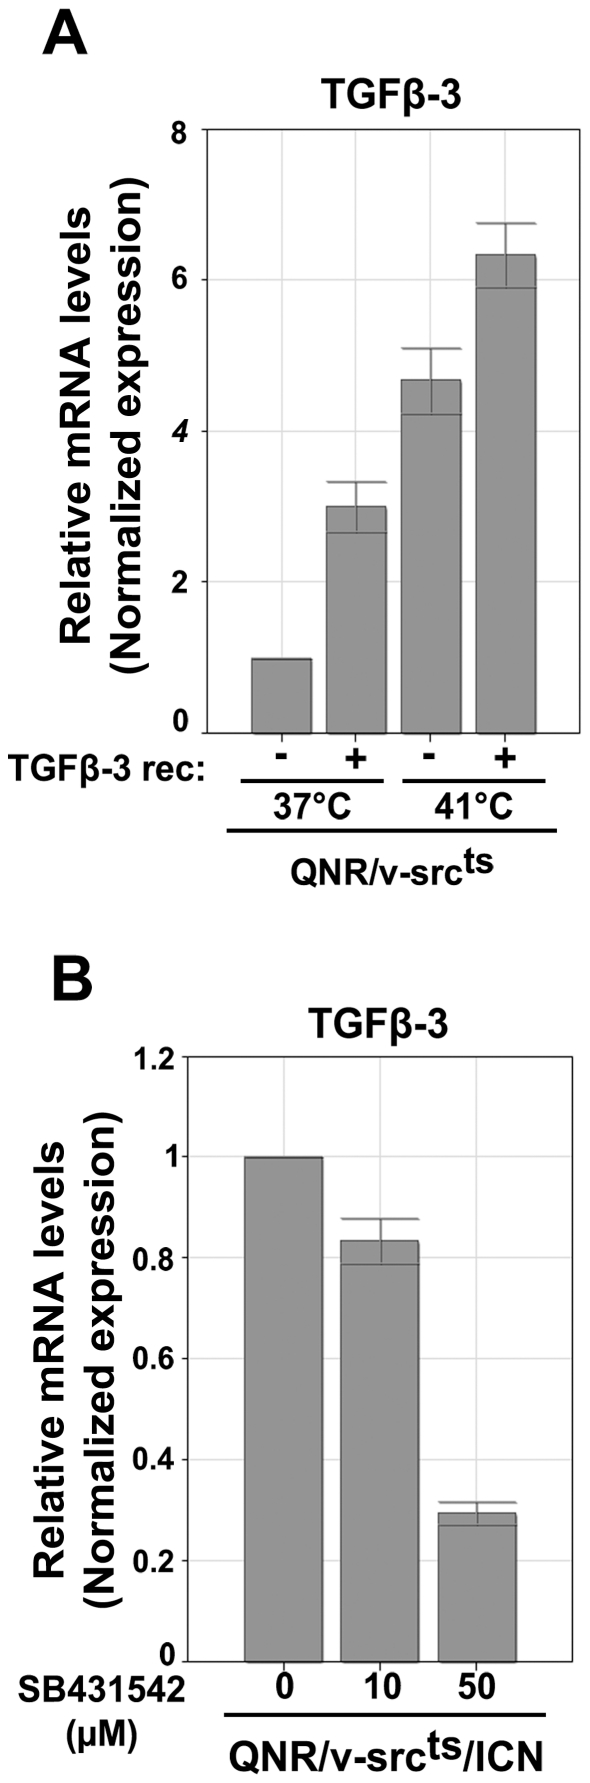 TGF-β3 expression is controlled by a positive feed-back loop. QPCR analysis of TGF-β-3 mRNA levels in (A) QNR/v-src ts treated with 2 µg/ml of recombinant TGF-β3 or (B) QNR/v-Src ts /ICN cells at 37°C incubated with increasing doses of SB431542 during 24 hrs. After reverse transcription of 1 µg of RNA, TGF-β3 cDNA were amplified by QPCR. Results were normalized based on HPRT and TBP transcript levels and presented in relative arbitrary units using values obtained for untreated cells as reference equal to 1. Each bar represents the mean −/+ S.E. of three experiments.